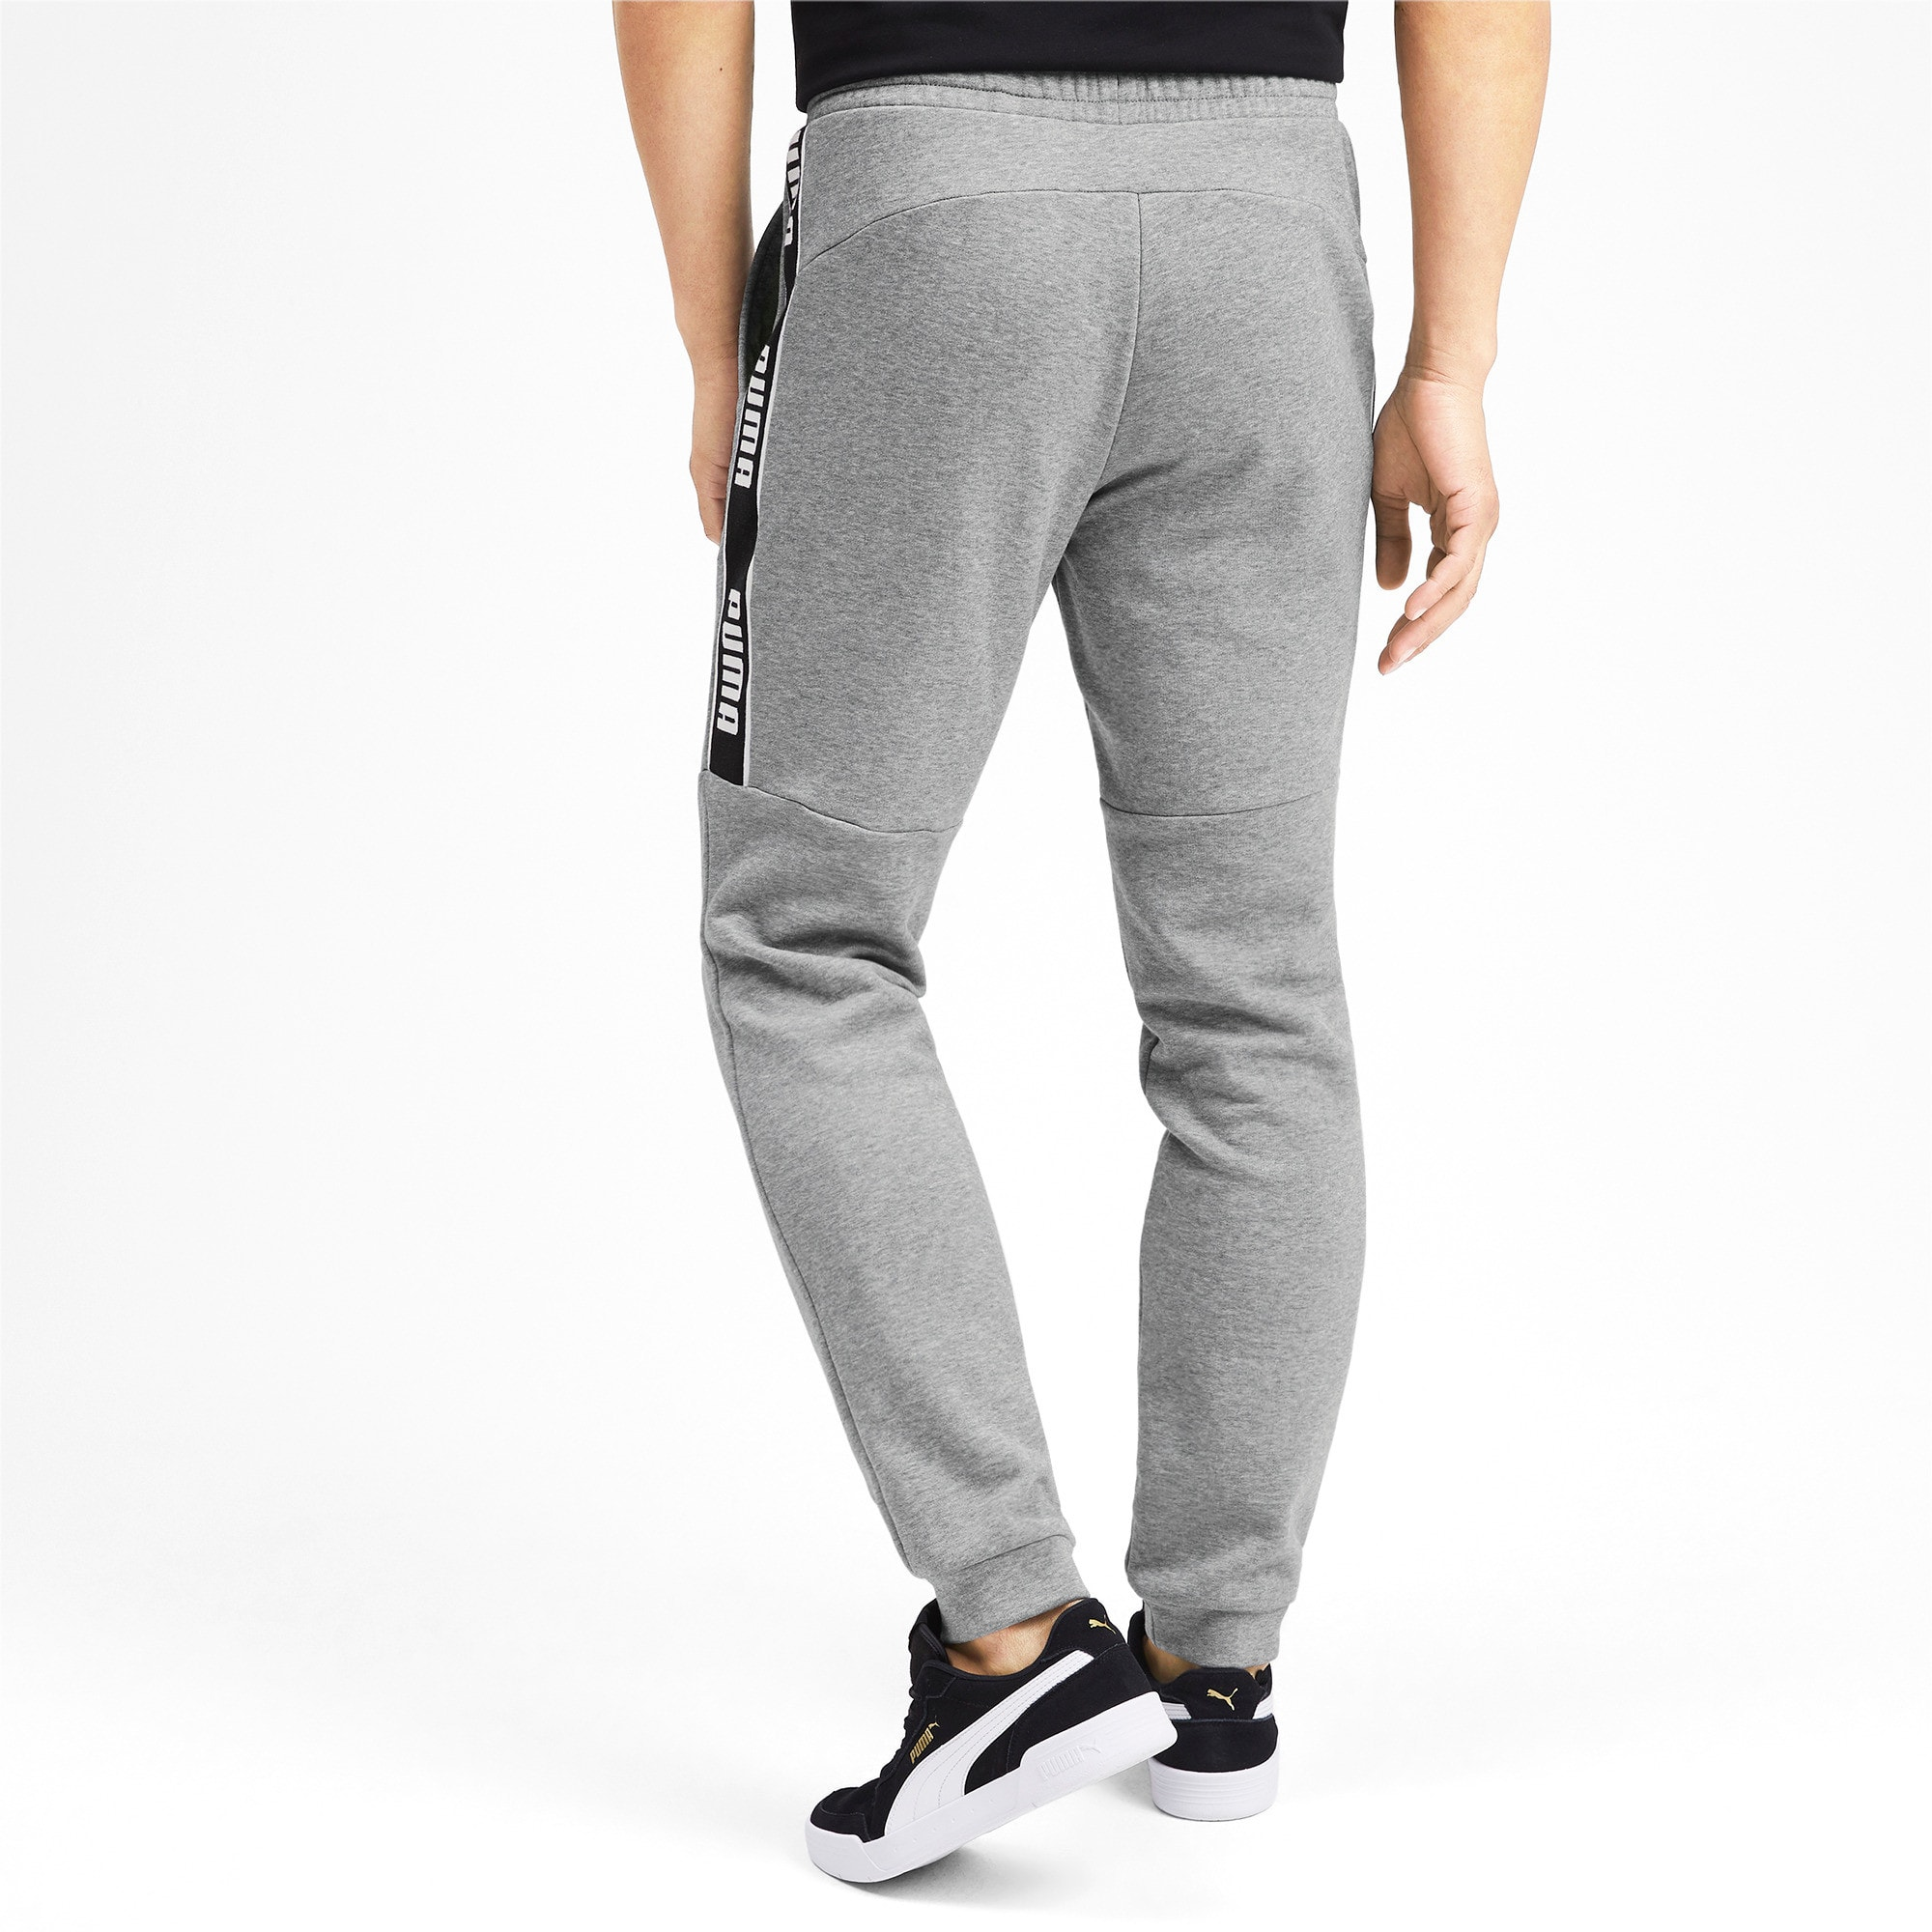 Thumbnail 2 of Amplified Herren Sweatpants, Medium Gray Heather, medium